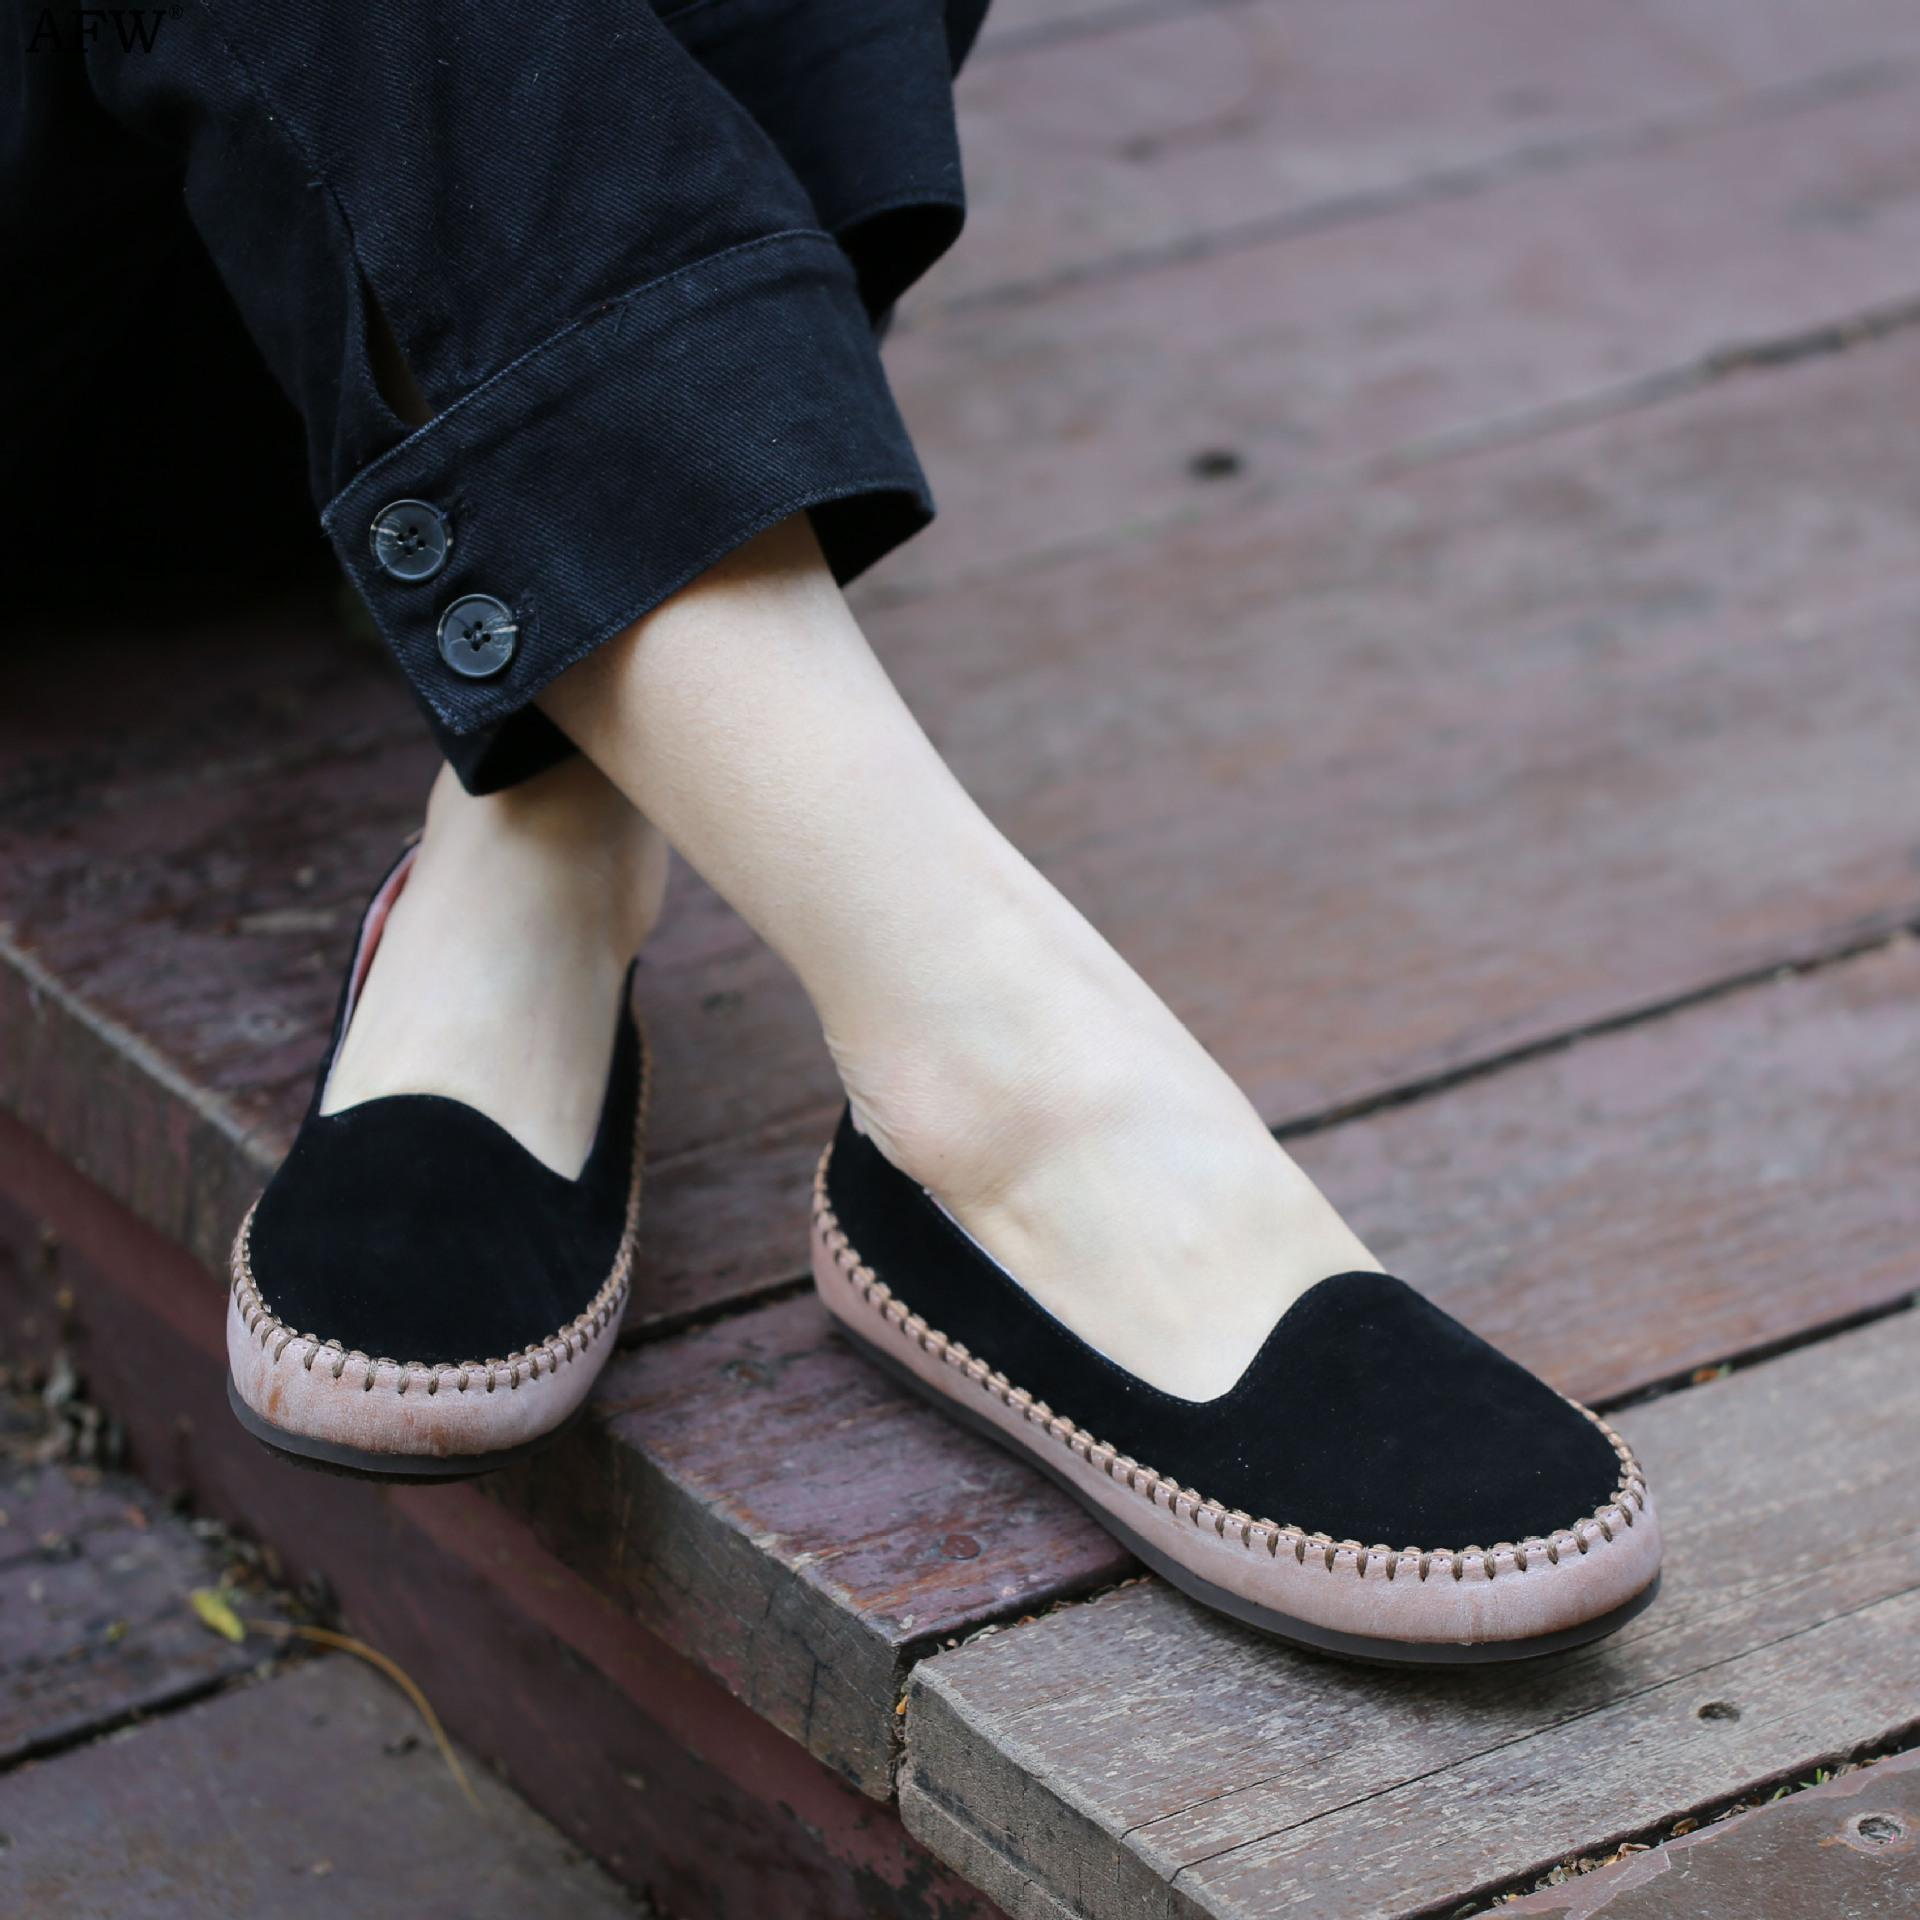 AFW Women Leather Loafers Black Low Heel Spring Shoes 2018 Soft Genuine Leather Women Flats Slip On Handmade Retro Women Shoes cresfimix zapatos women cute flat shoes lady spring and summer pu leather flats female casual soft comfortable slip on shoes